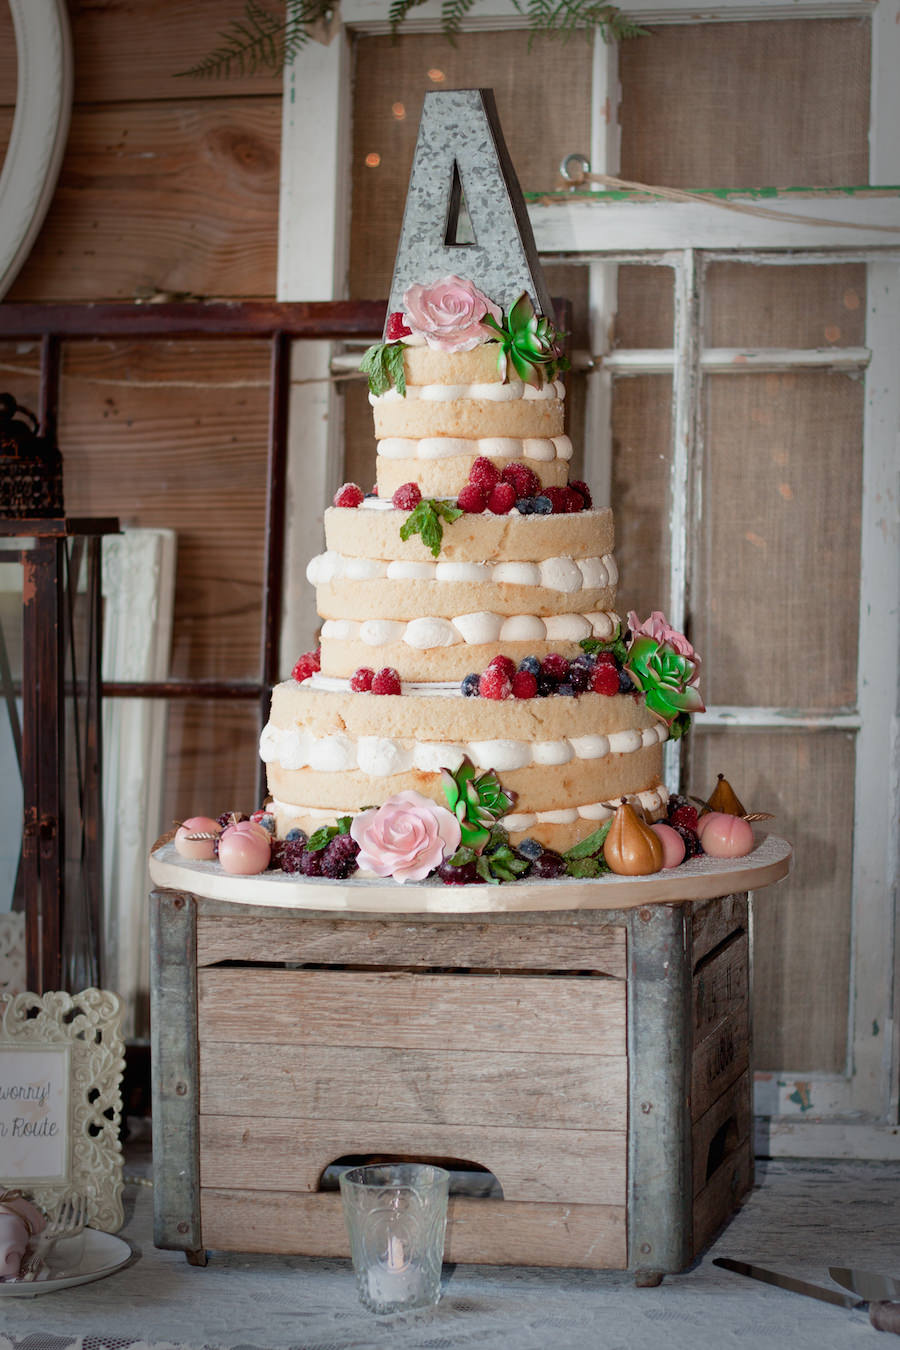 Three Tiered, Round, Naked Cake with Berry Accents and Monogram Intial Cake Topper | Tampa Wedding Cake and Bakery Alessi Bakery